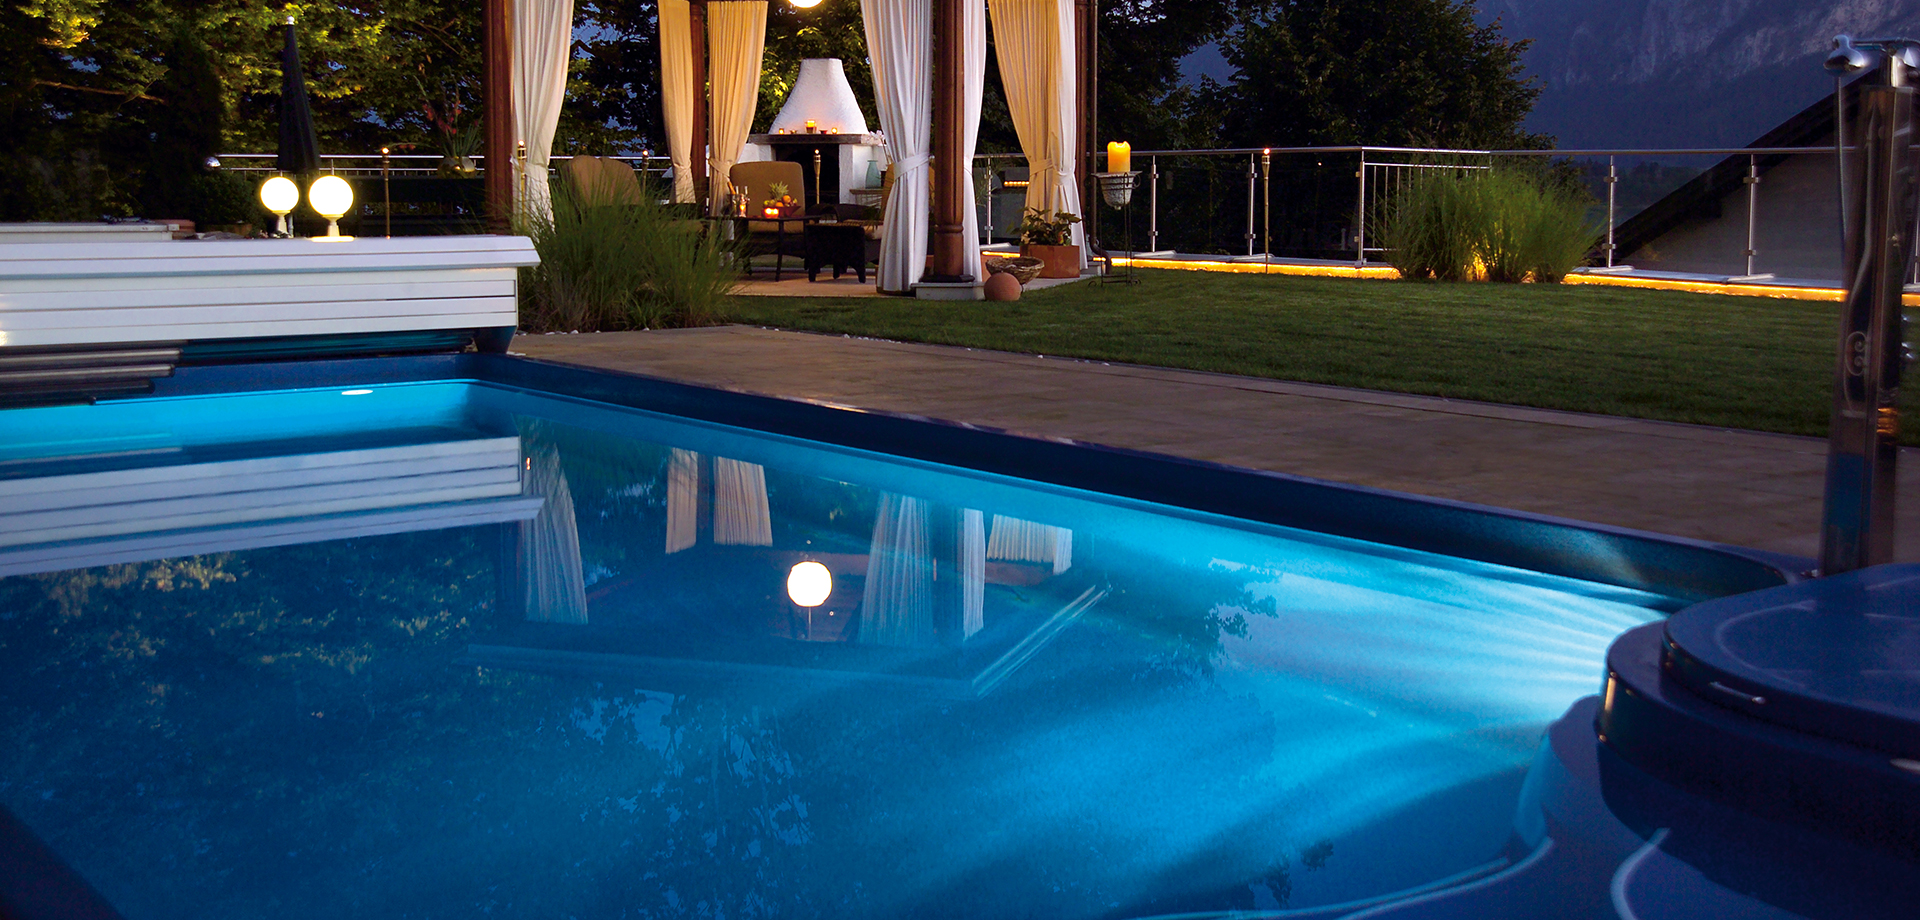 Pool Builders Dallas - Award Winning Pool Builder in Dallas